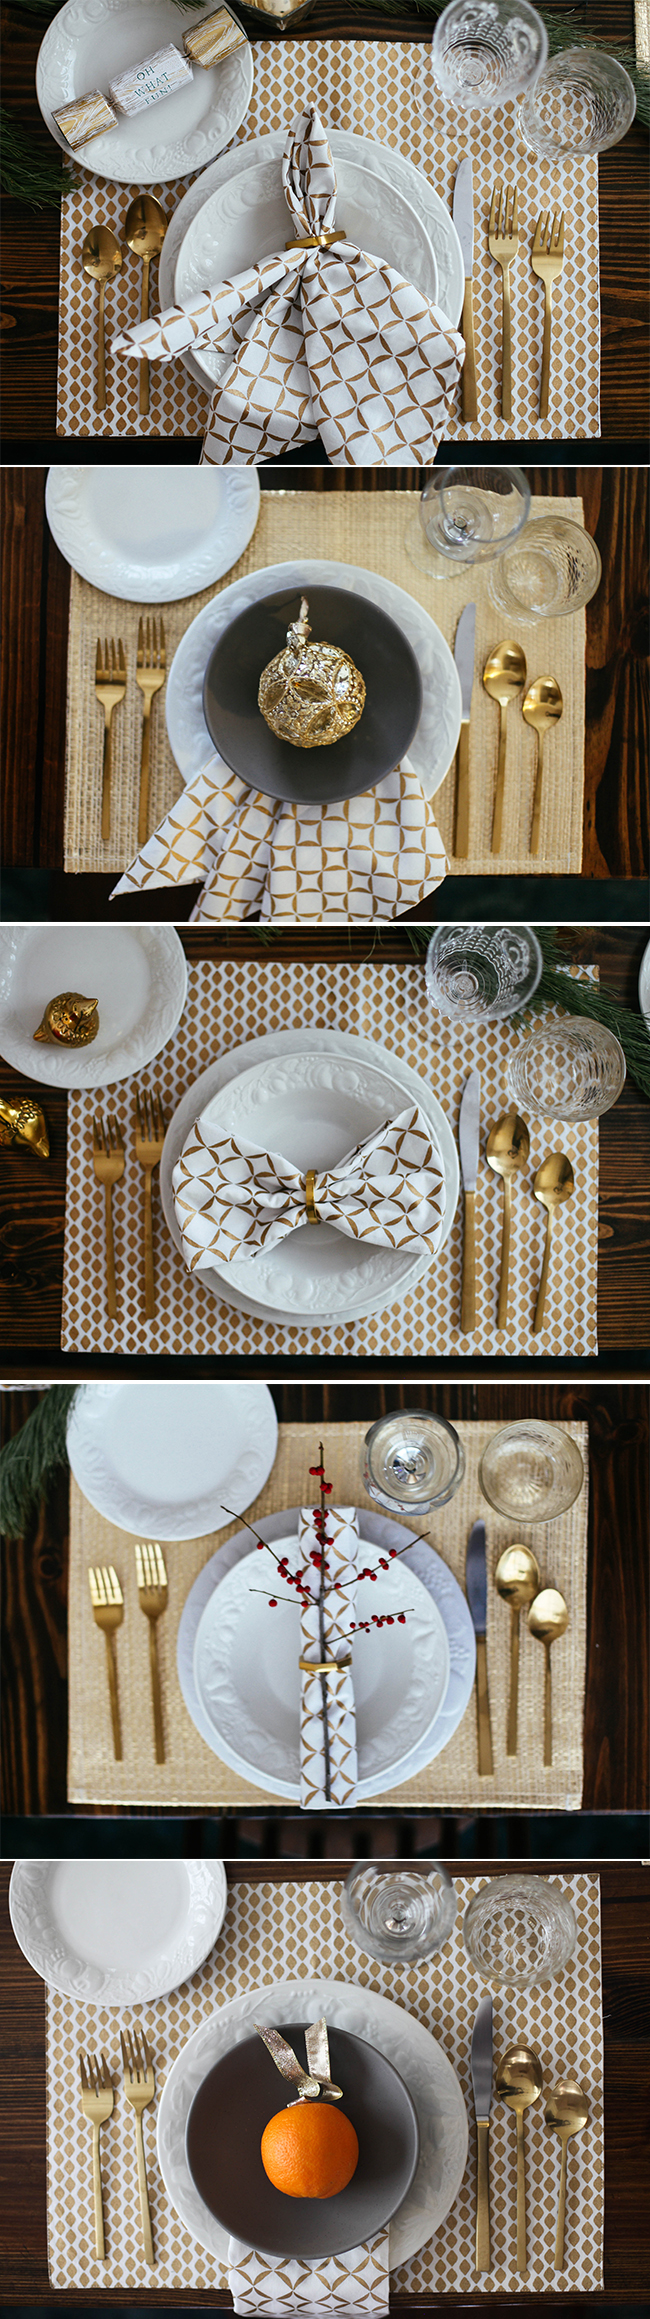 Christmas and New Year Table Setting Ideas | In Honor Of Design